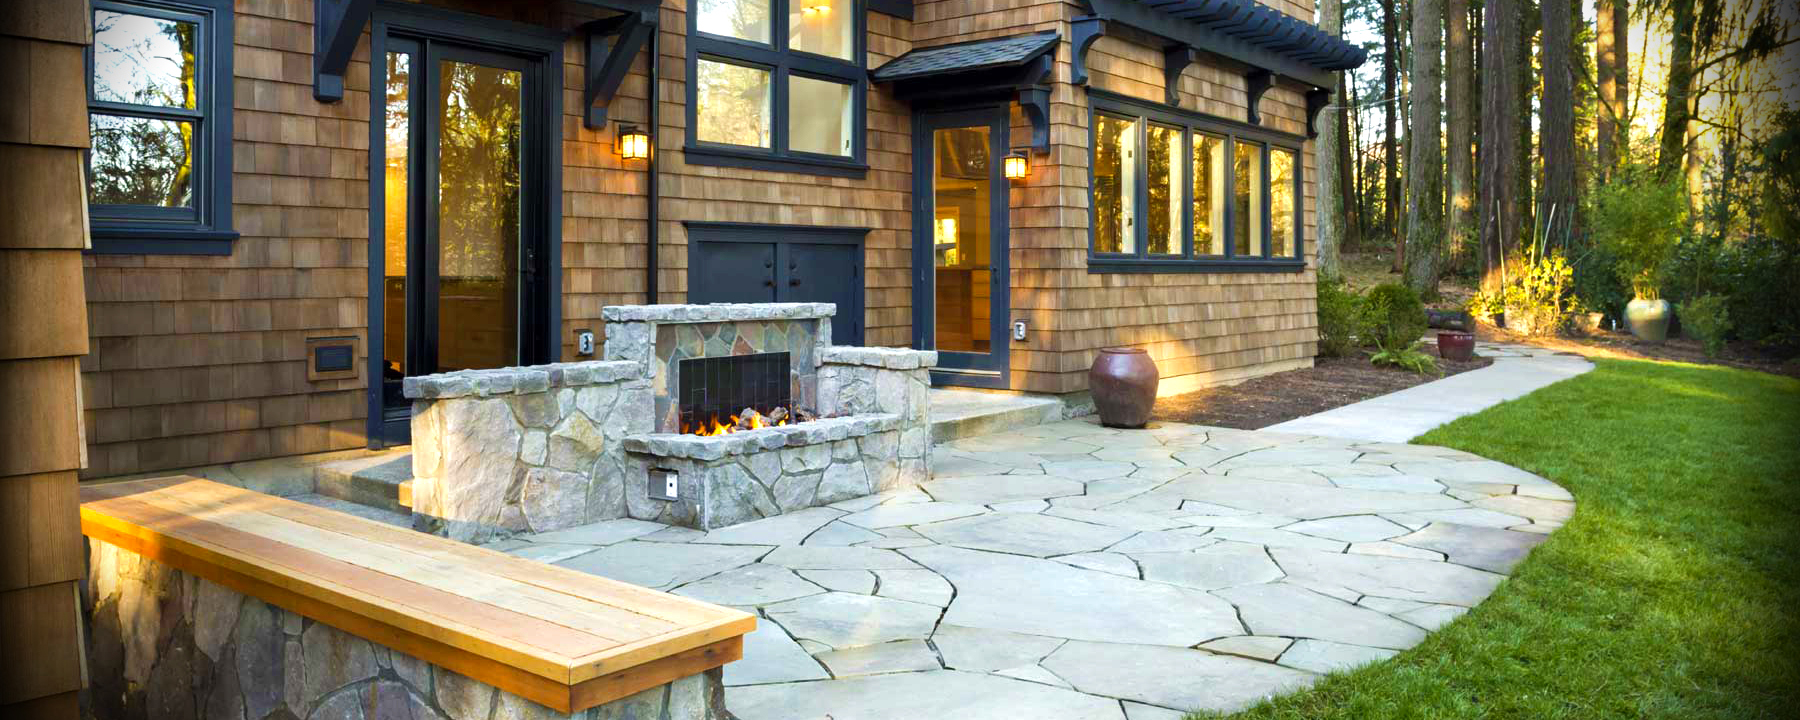 Paver Patios and Walkways | Newport Ave Landscaping